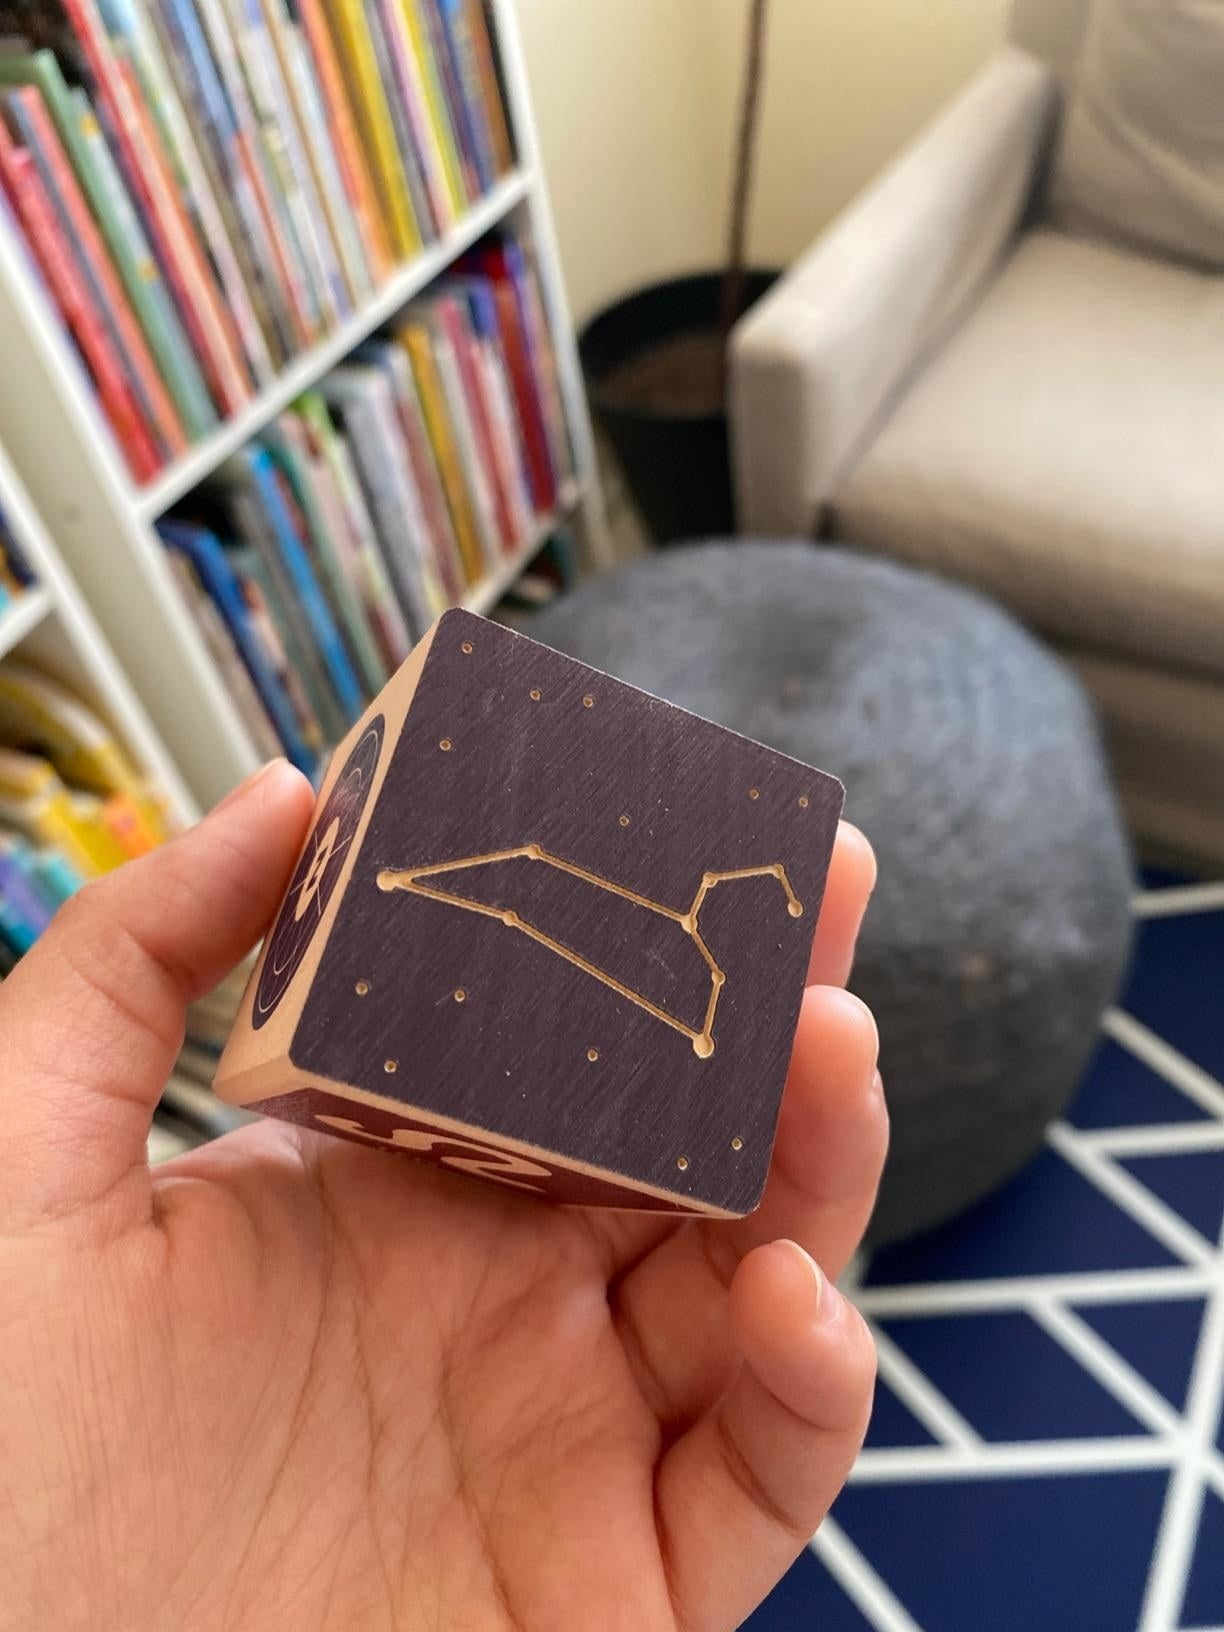 Reviewer's hand holding one of the blocks featuring a constellation